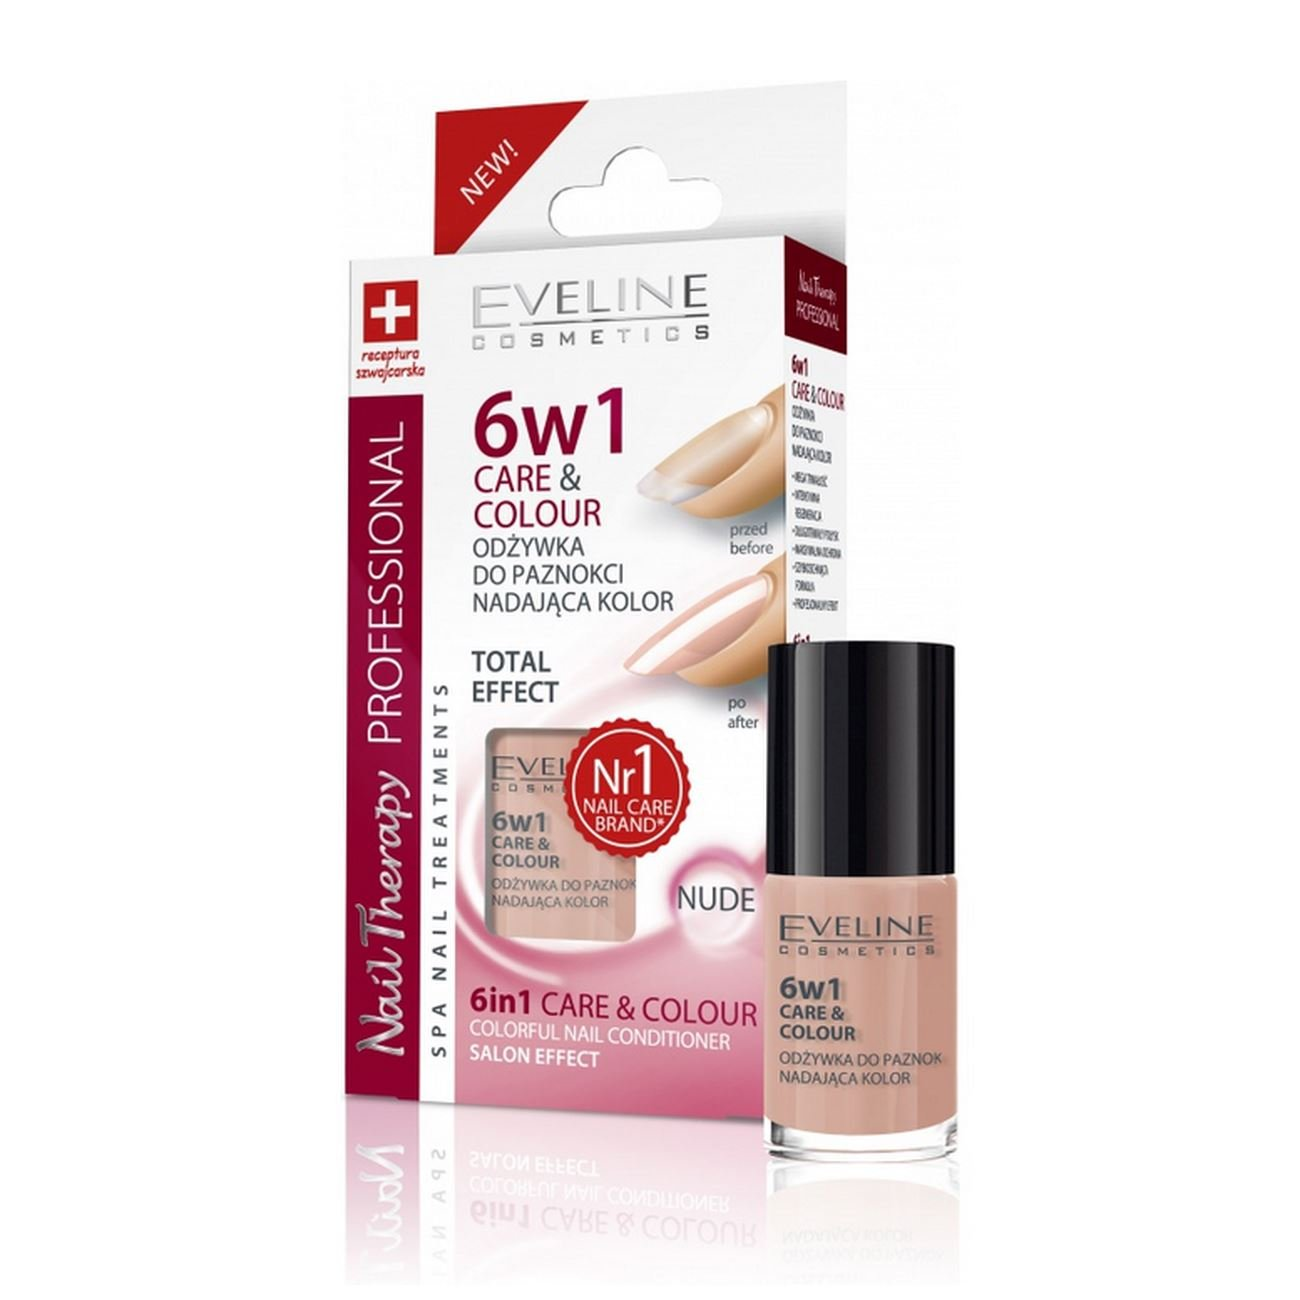 EVELINE - COLORFUL NAIL CONDITIONER CARE & COLOUR NAIL 6 IN 1 - NUDE - 5ml